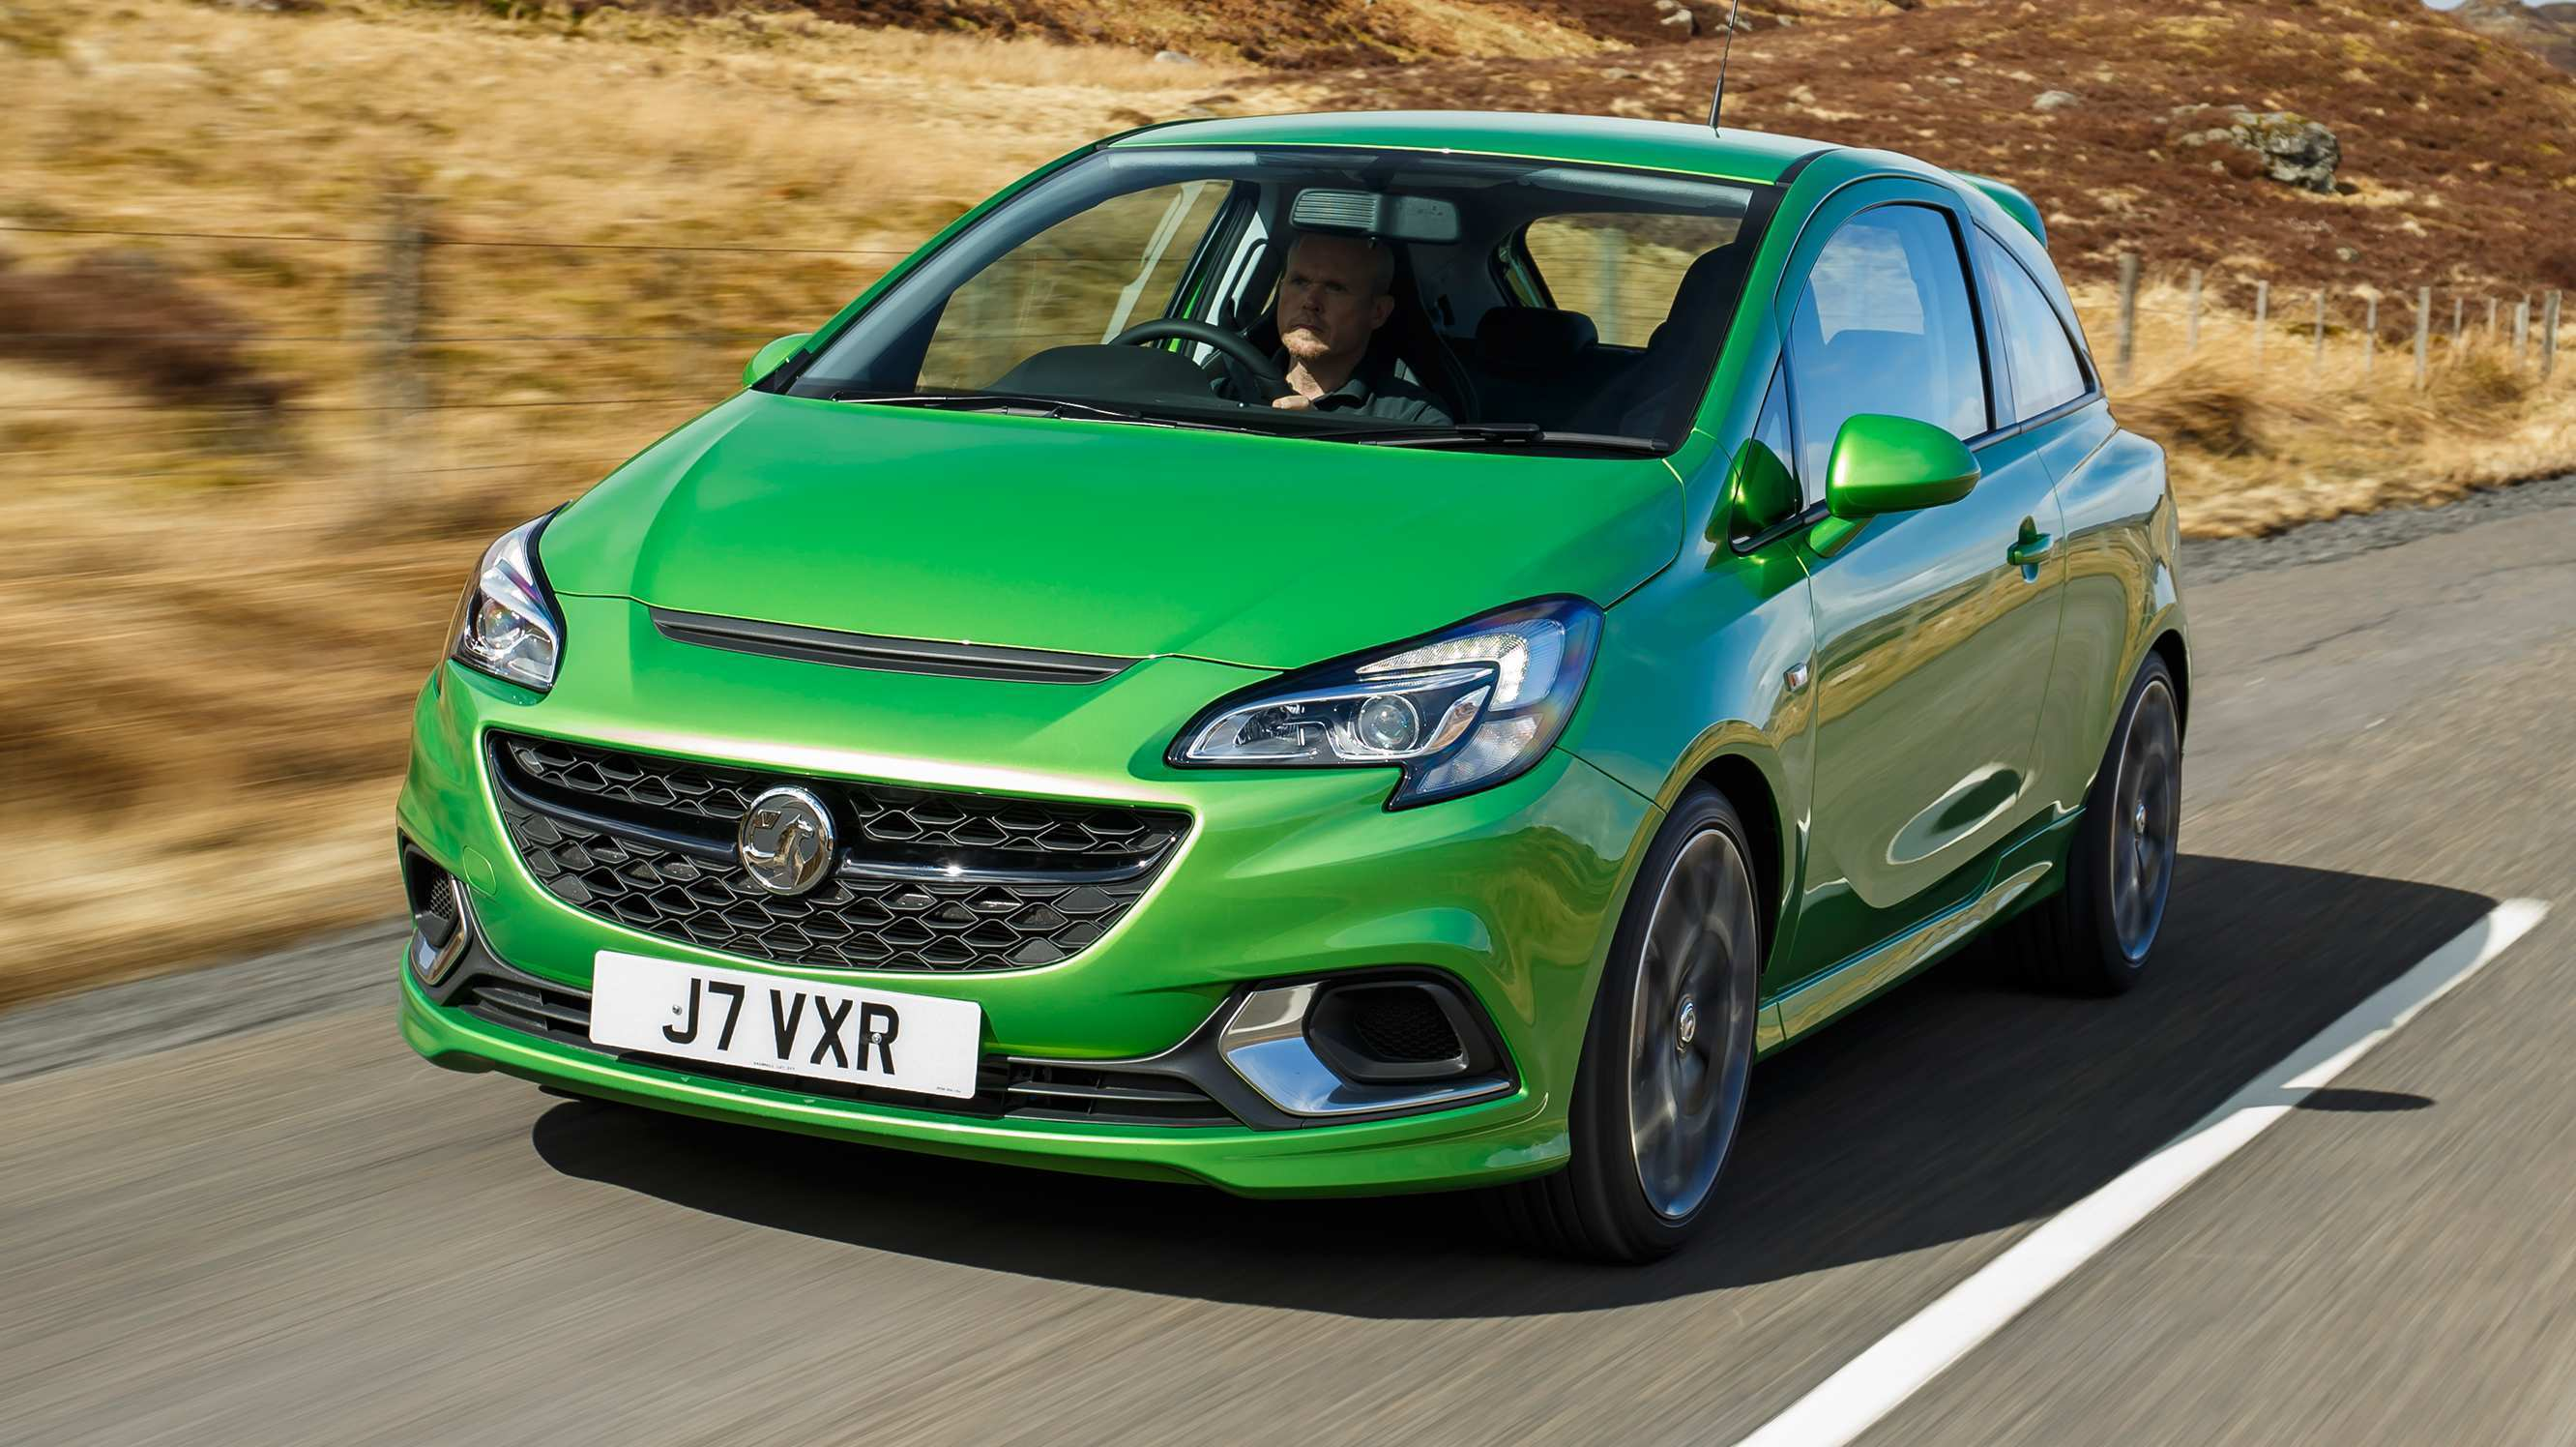 34 New 2020 Vauxhall Corsa VXR Ratings